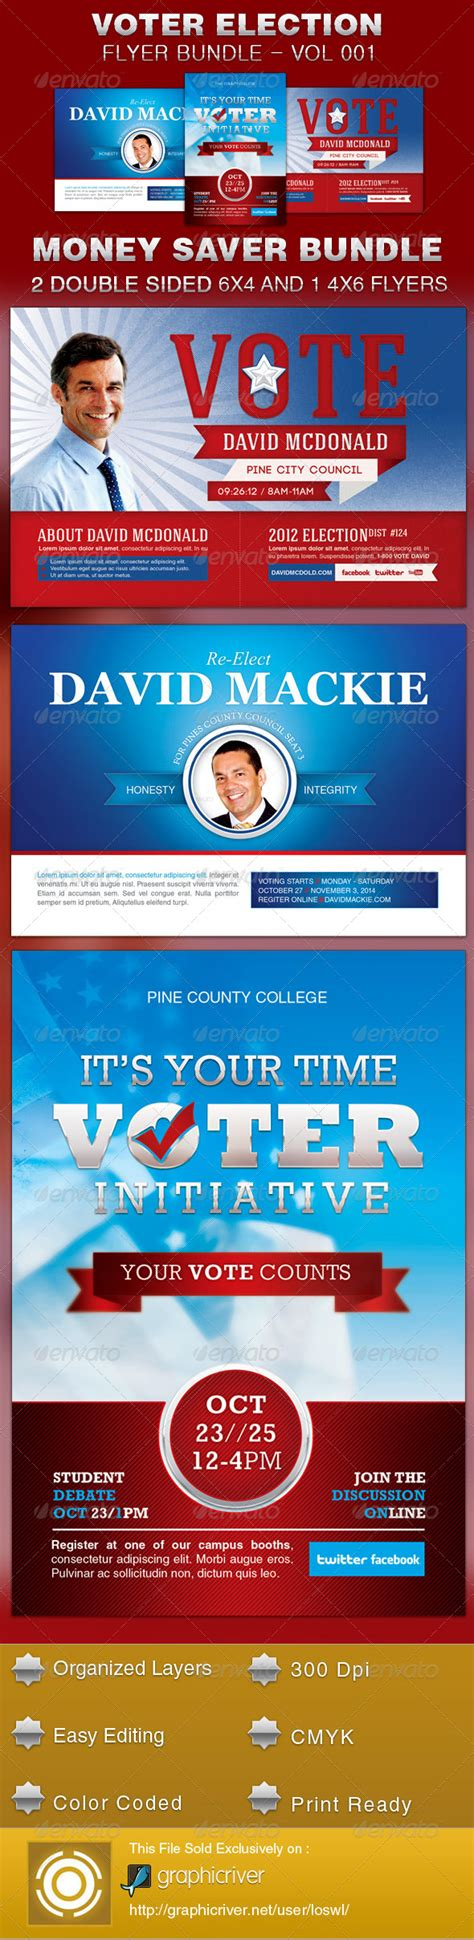 voting flyer templates free election flyer designs 187 tinkytyler org stock photos graphics